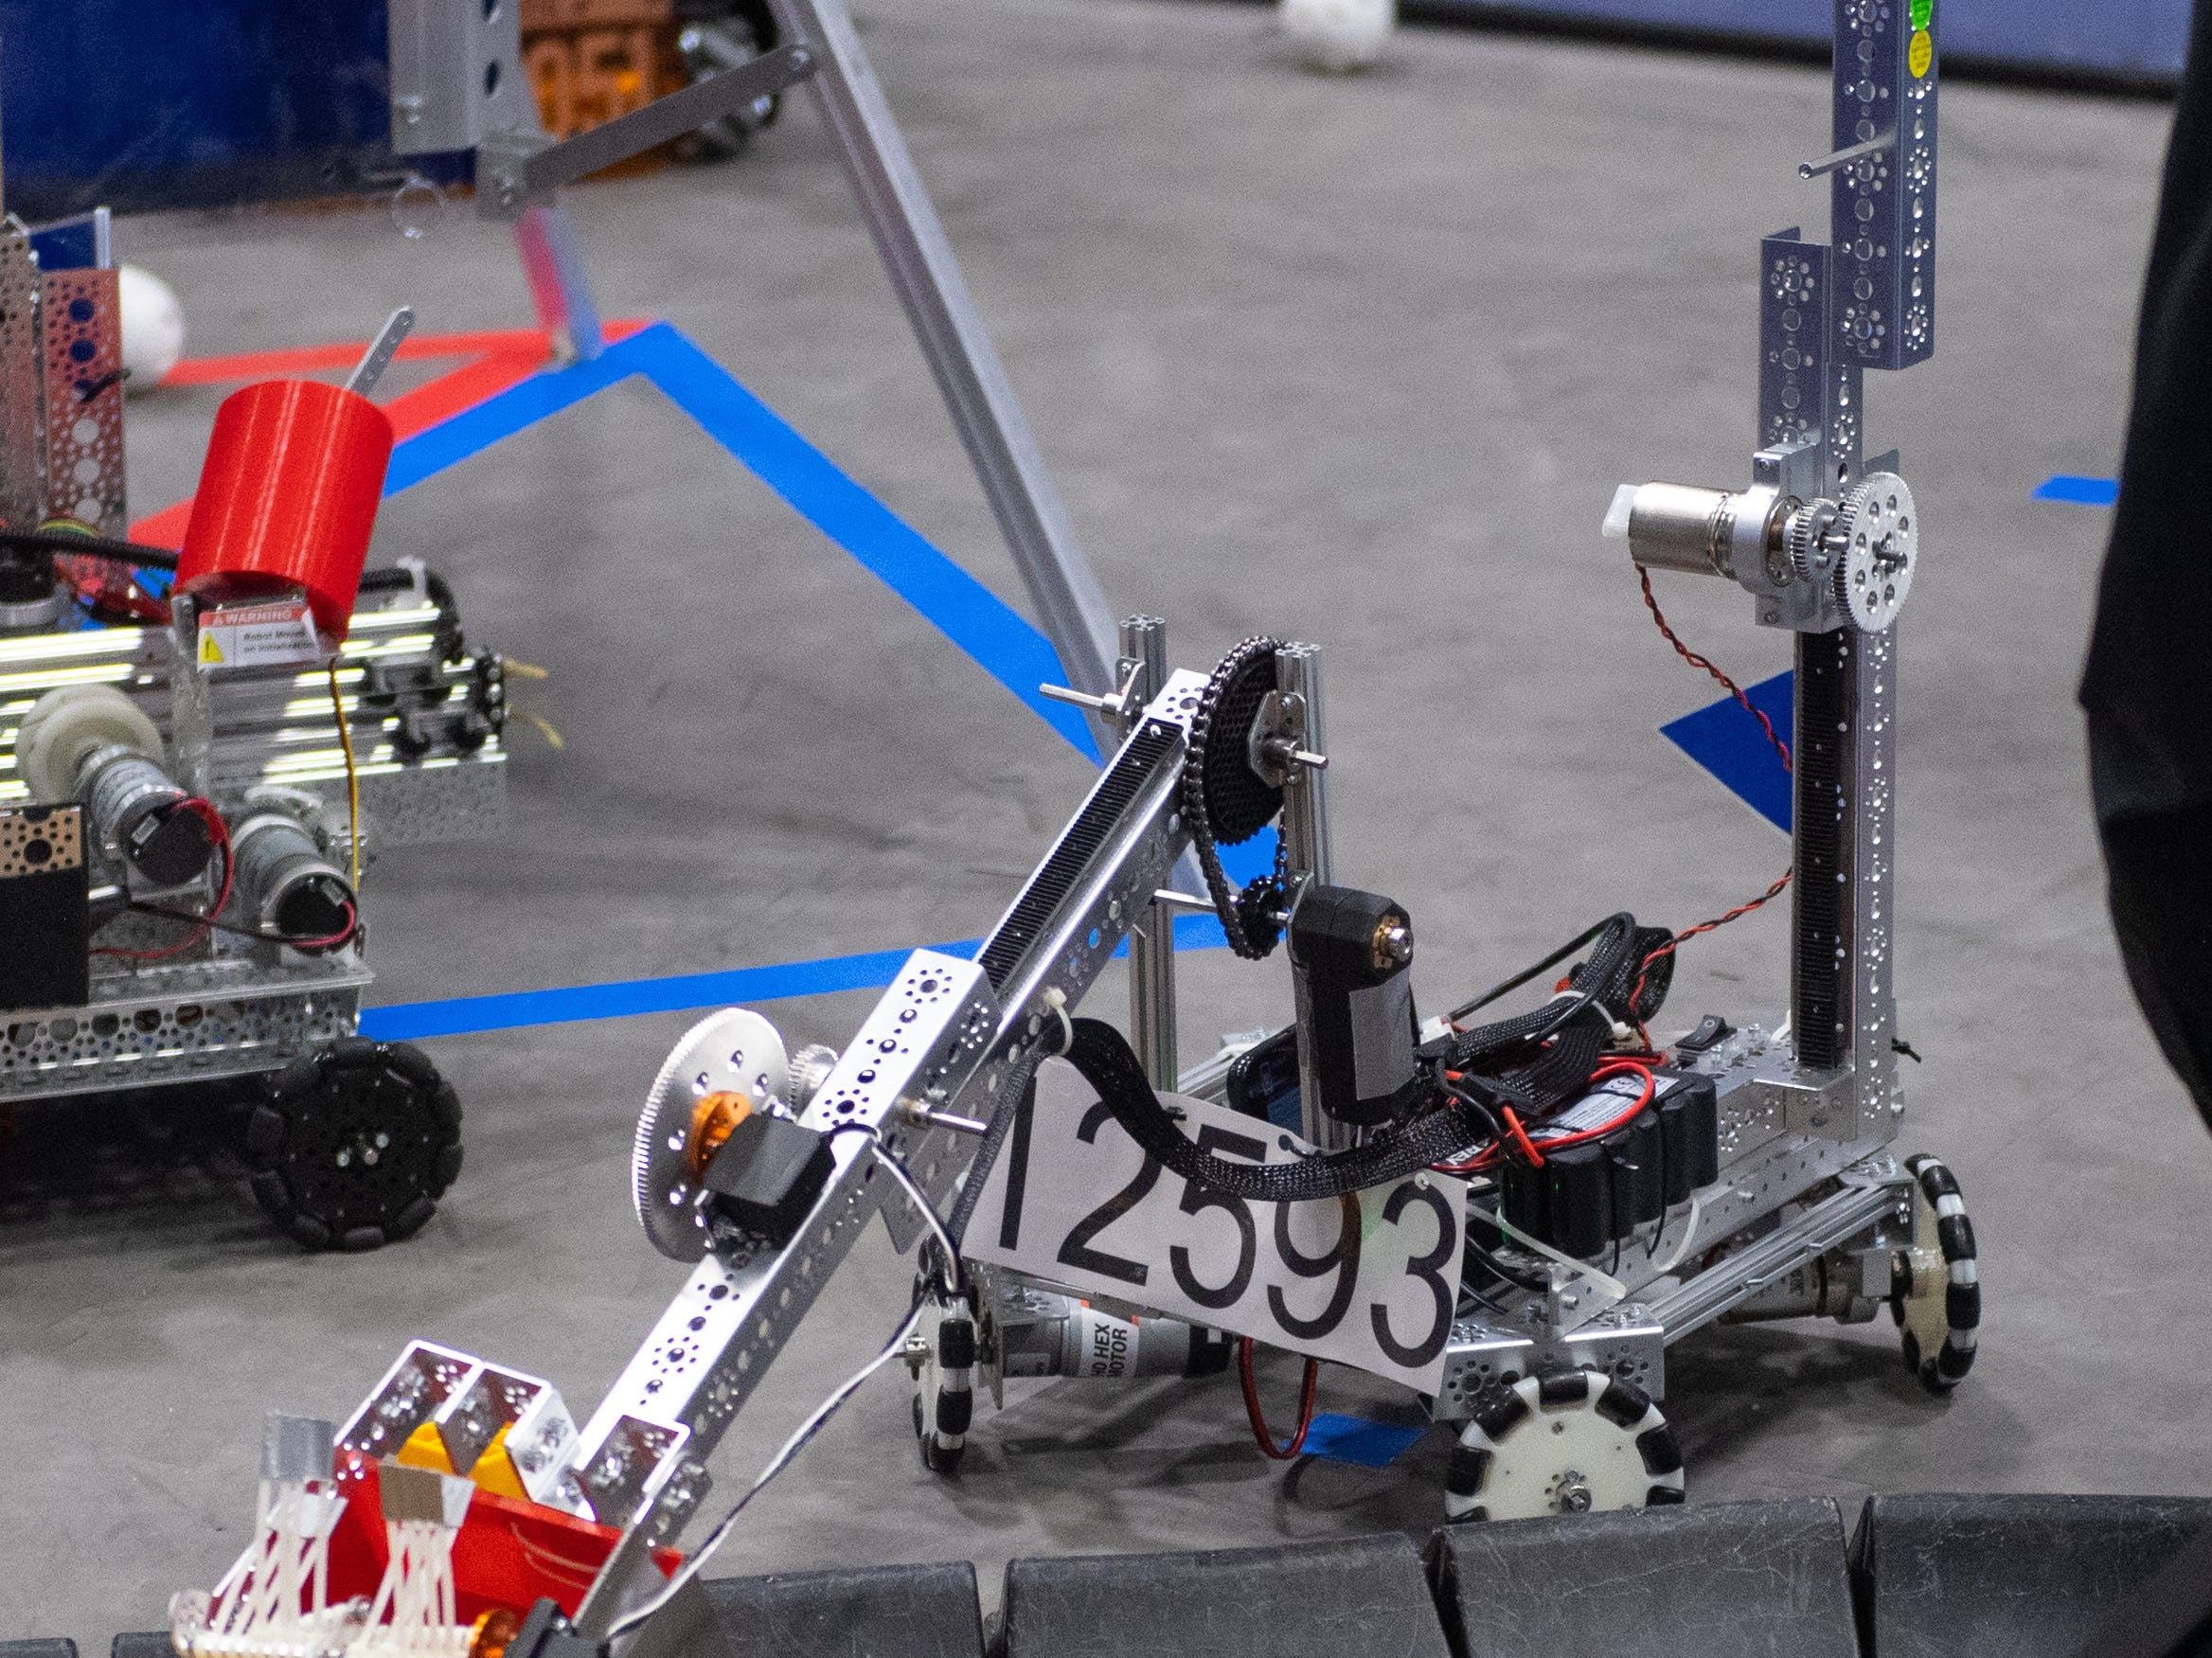 The objective of the competition is to use robots, made by the students, to collect the most items and return them to the ship before time runs out, February 2, 2019.